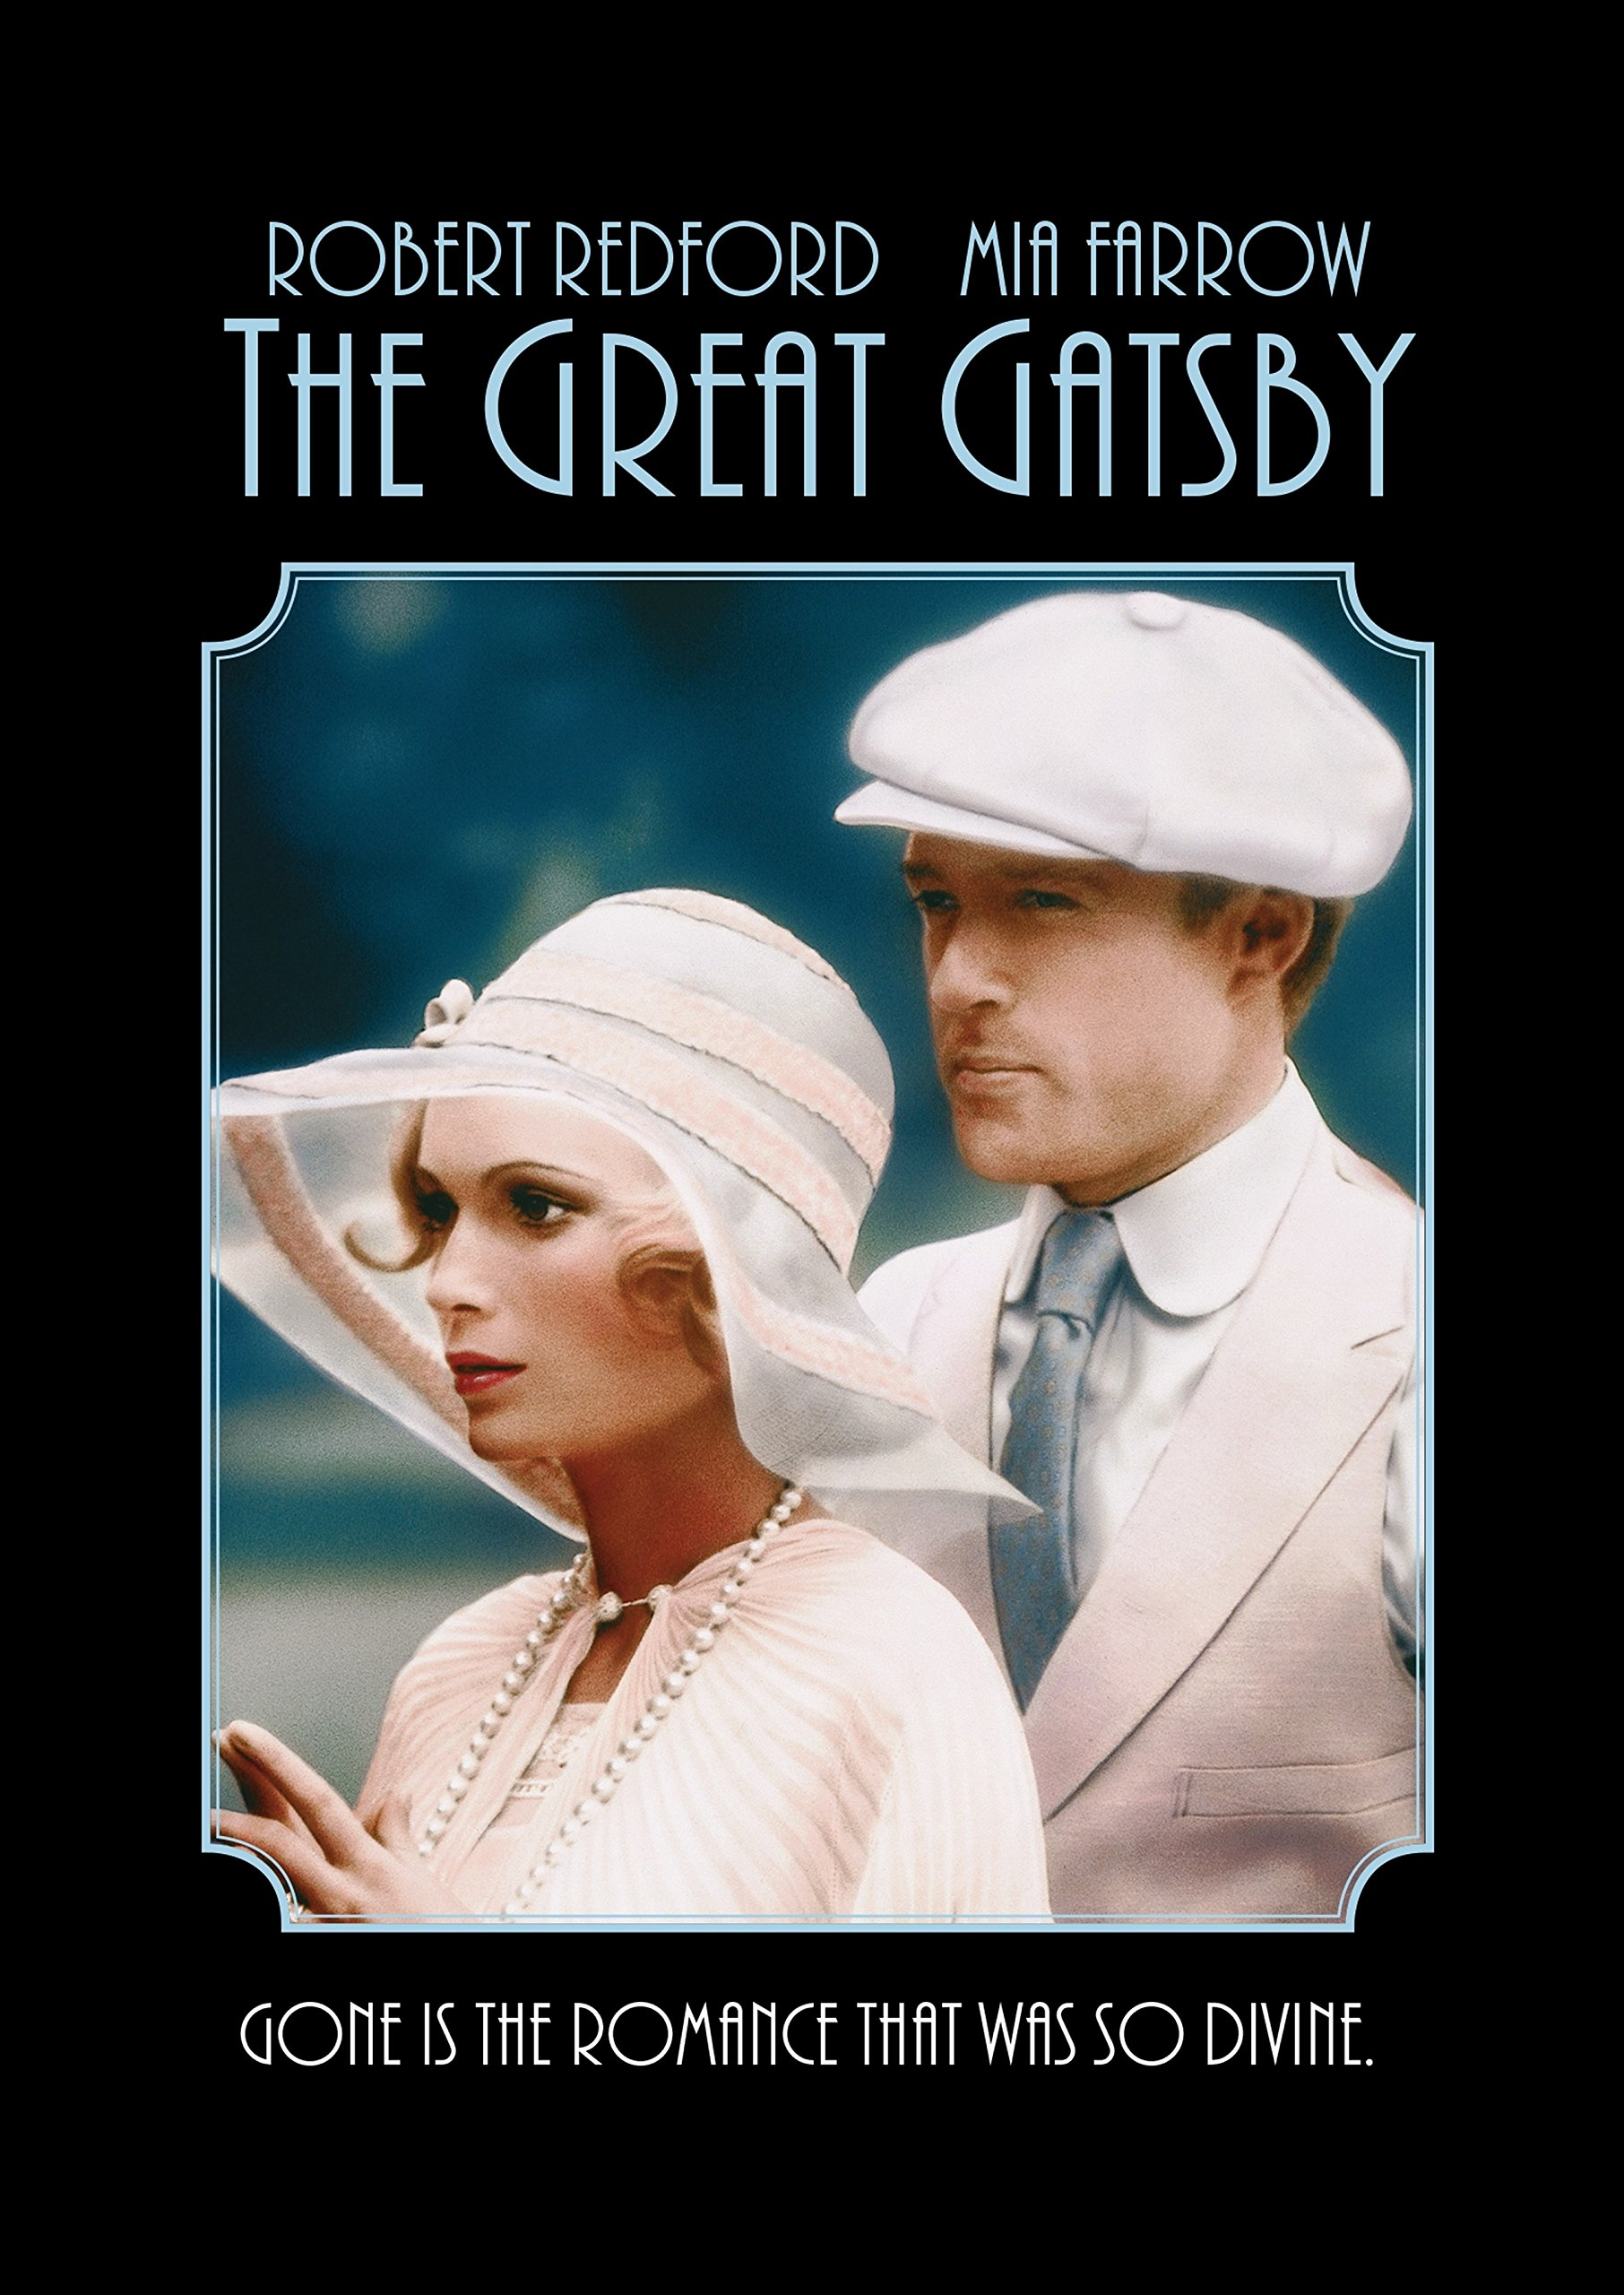 DVD : The Great Gatsby (Widescreen, Dolby, AC-3)